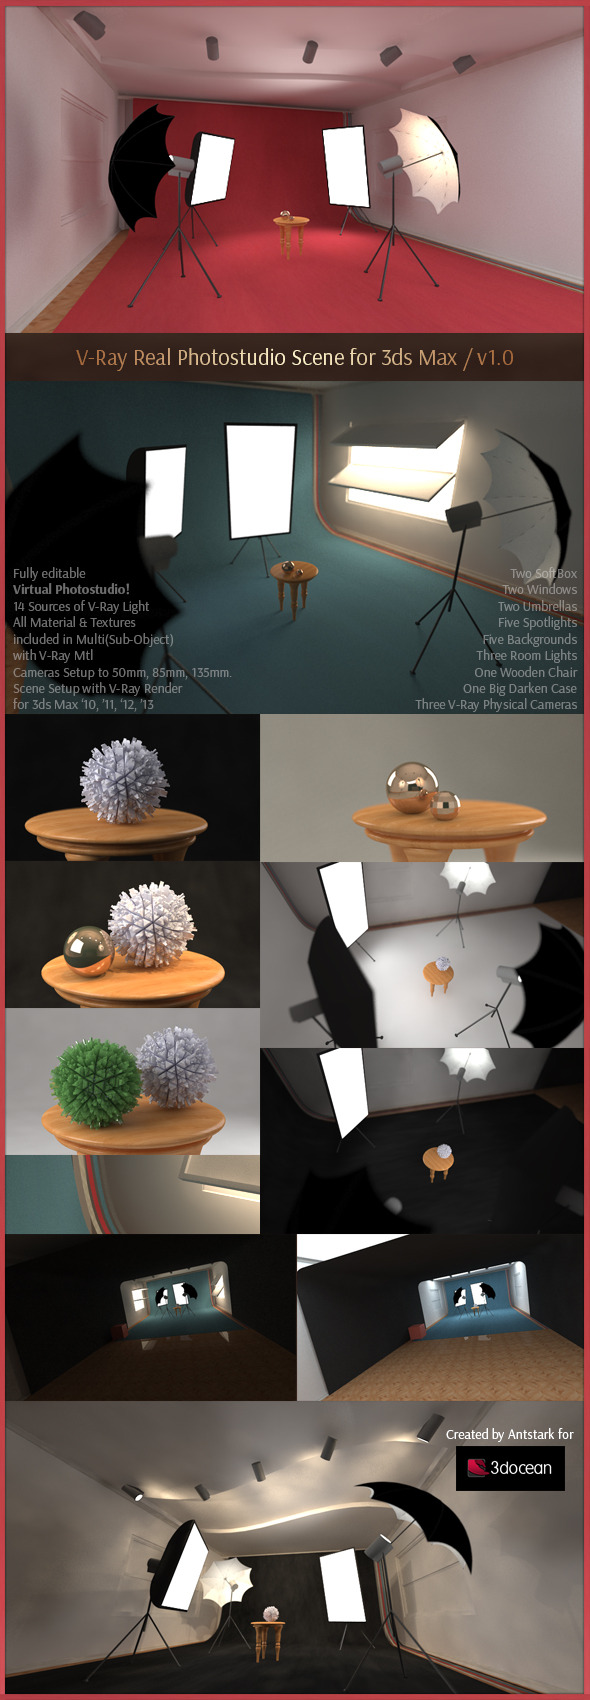 V-Ray Real Photostudio Scene for 3ds Max - 3DOcean Item for Sale